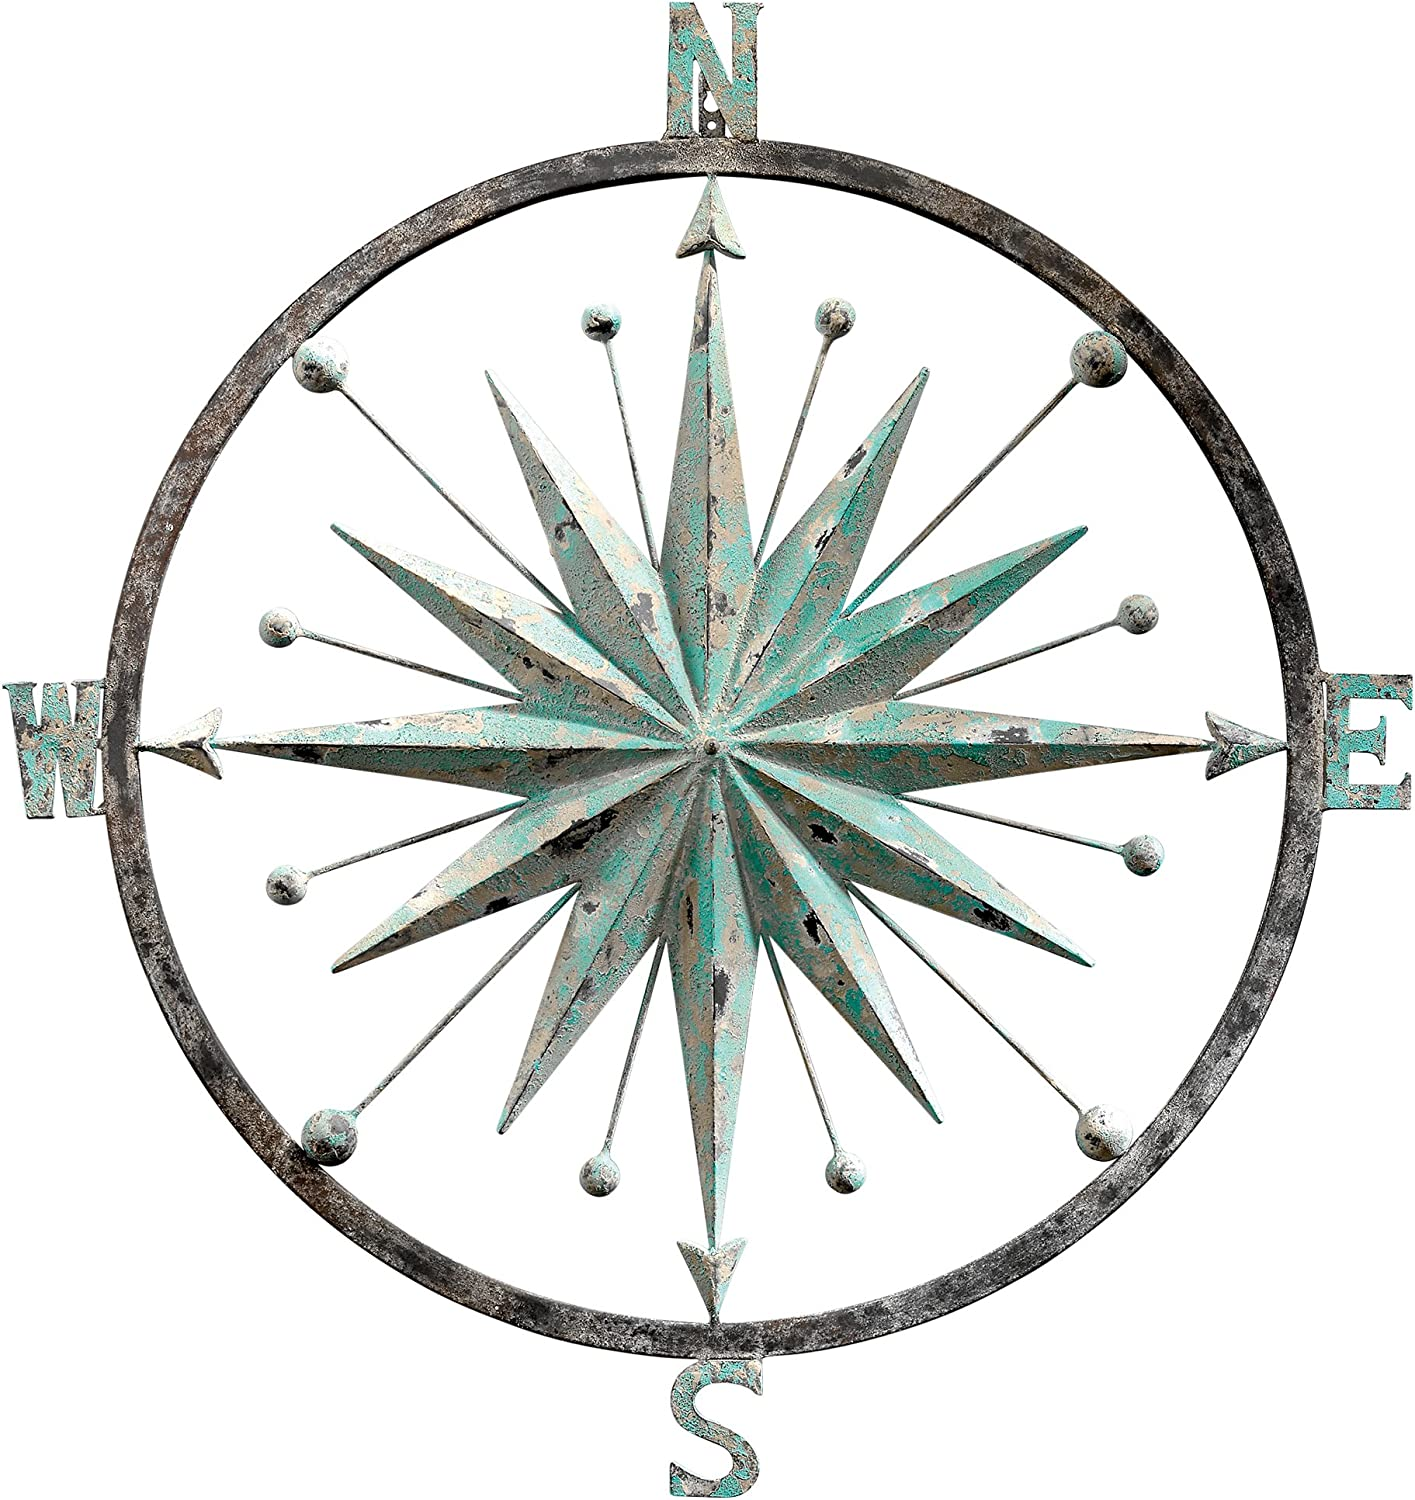 Design Toscano Winds Compass Rose Wall Sculpture, Verdigris